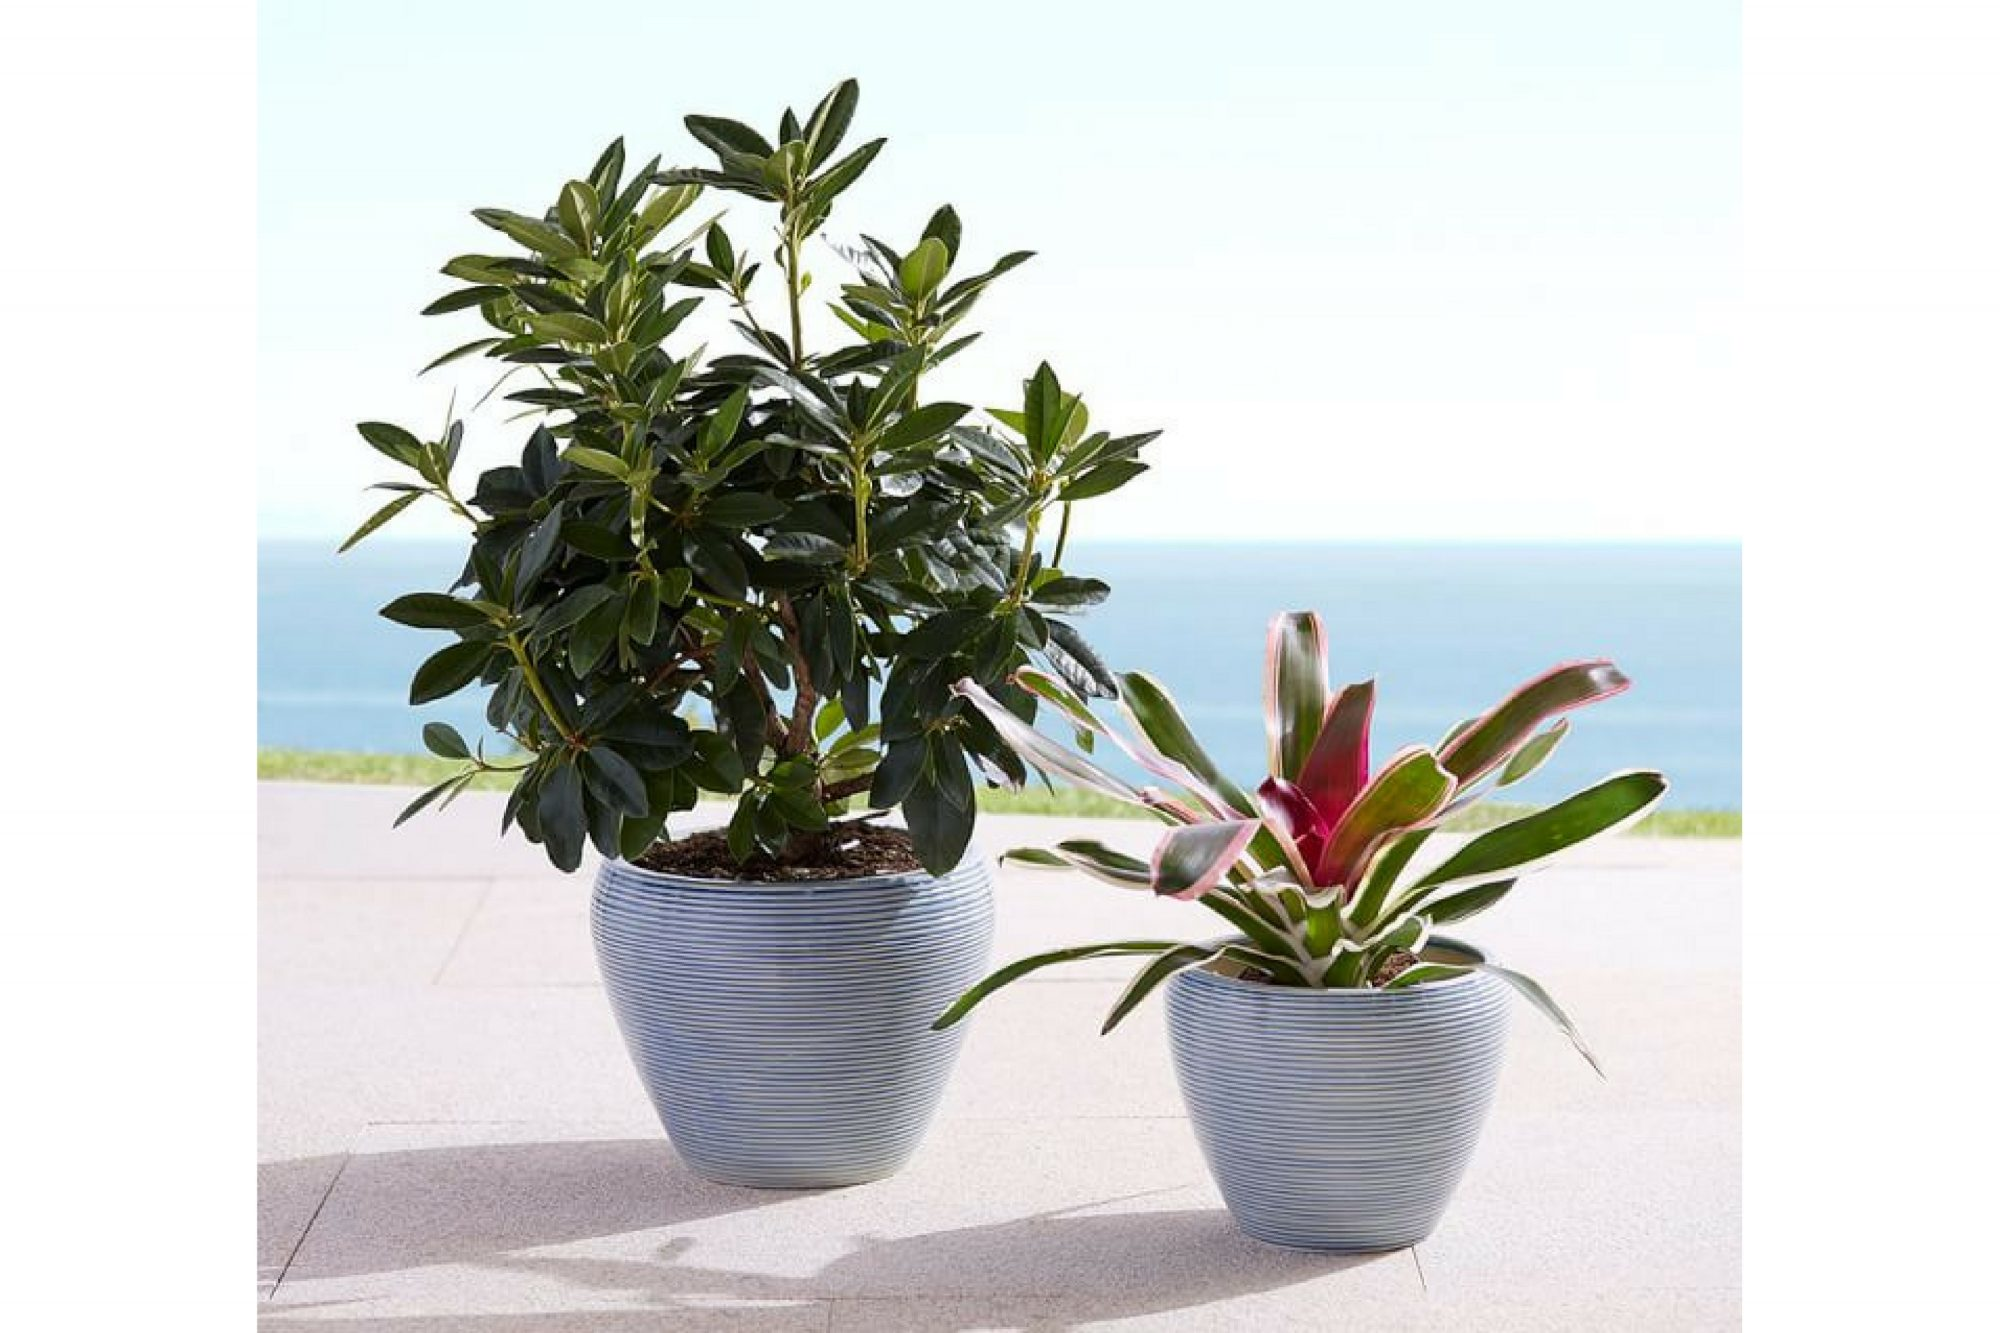 Pots for Indoor Plants ribbed ceramic planter